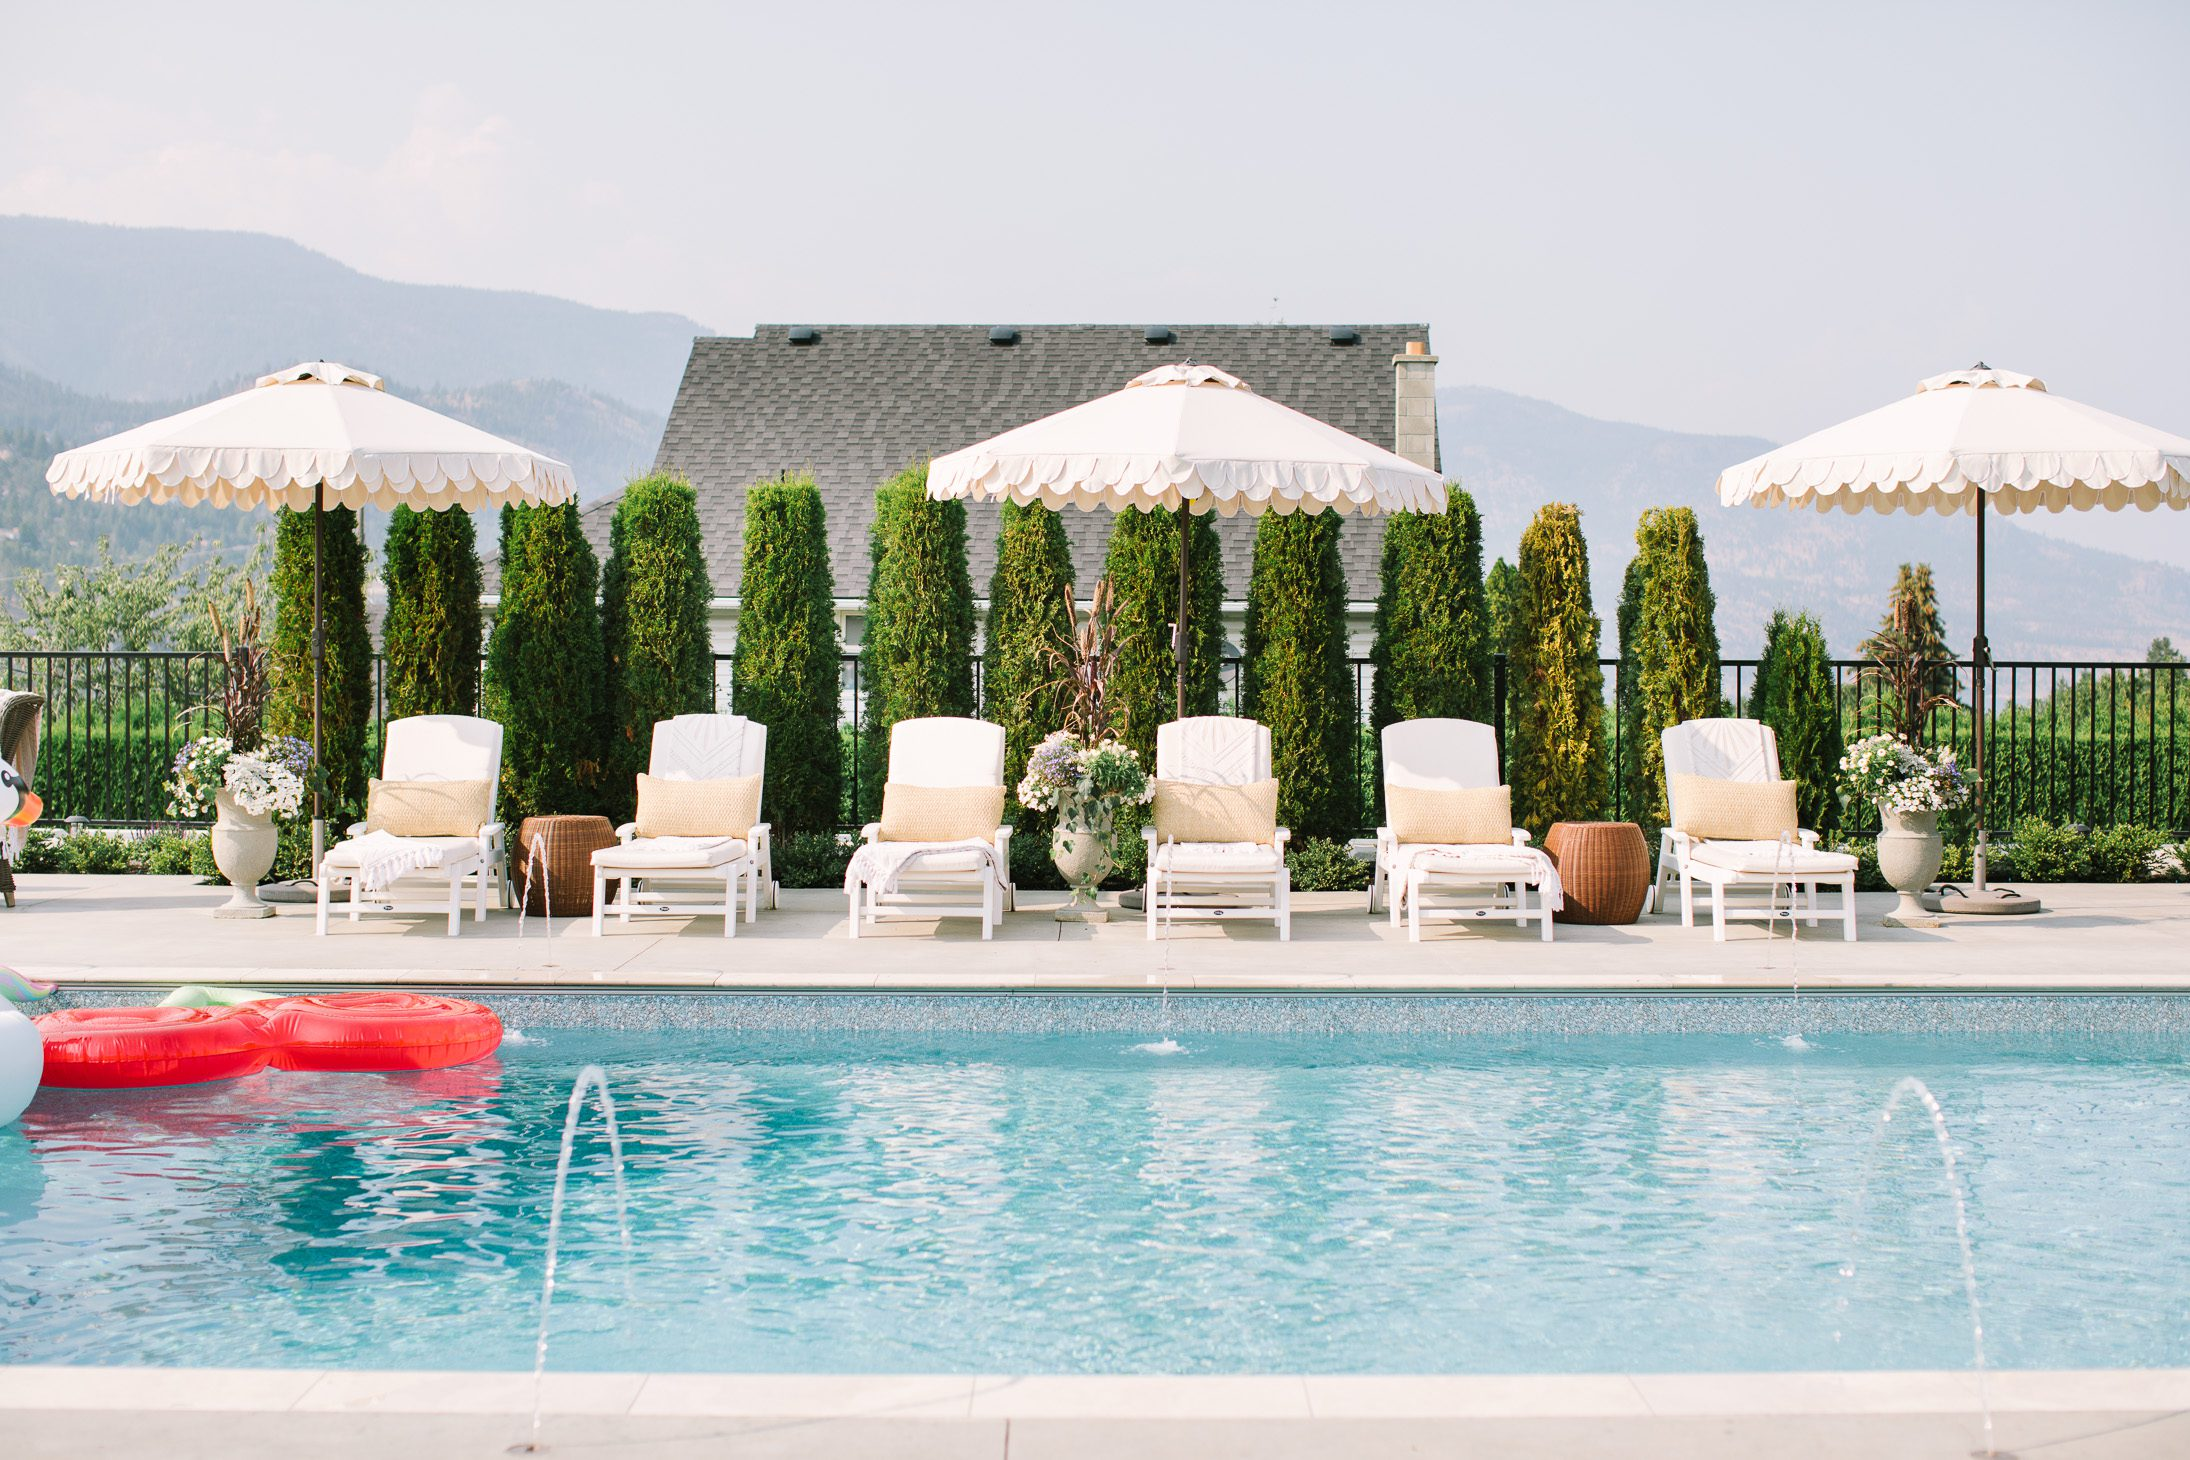 Jillian Harris Summer Sunshine Details on our Pool